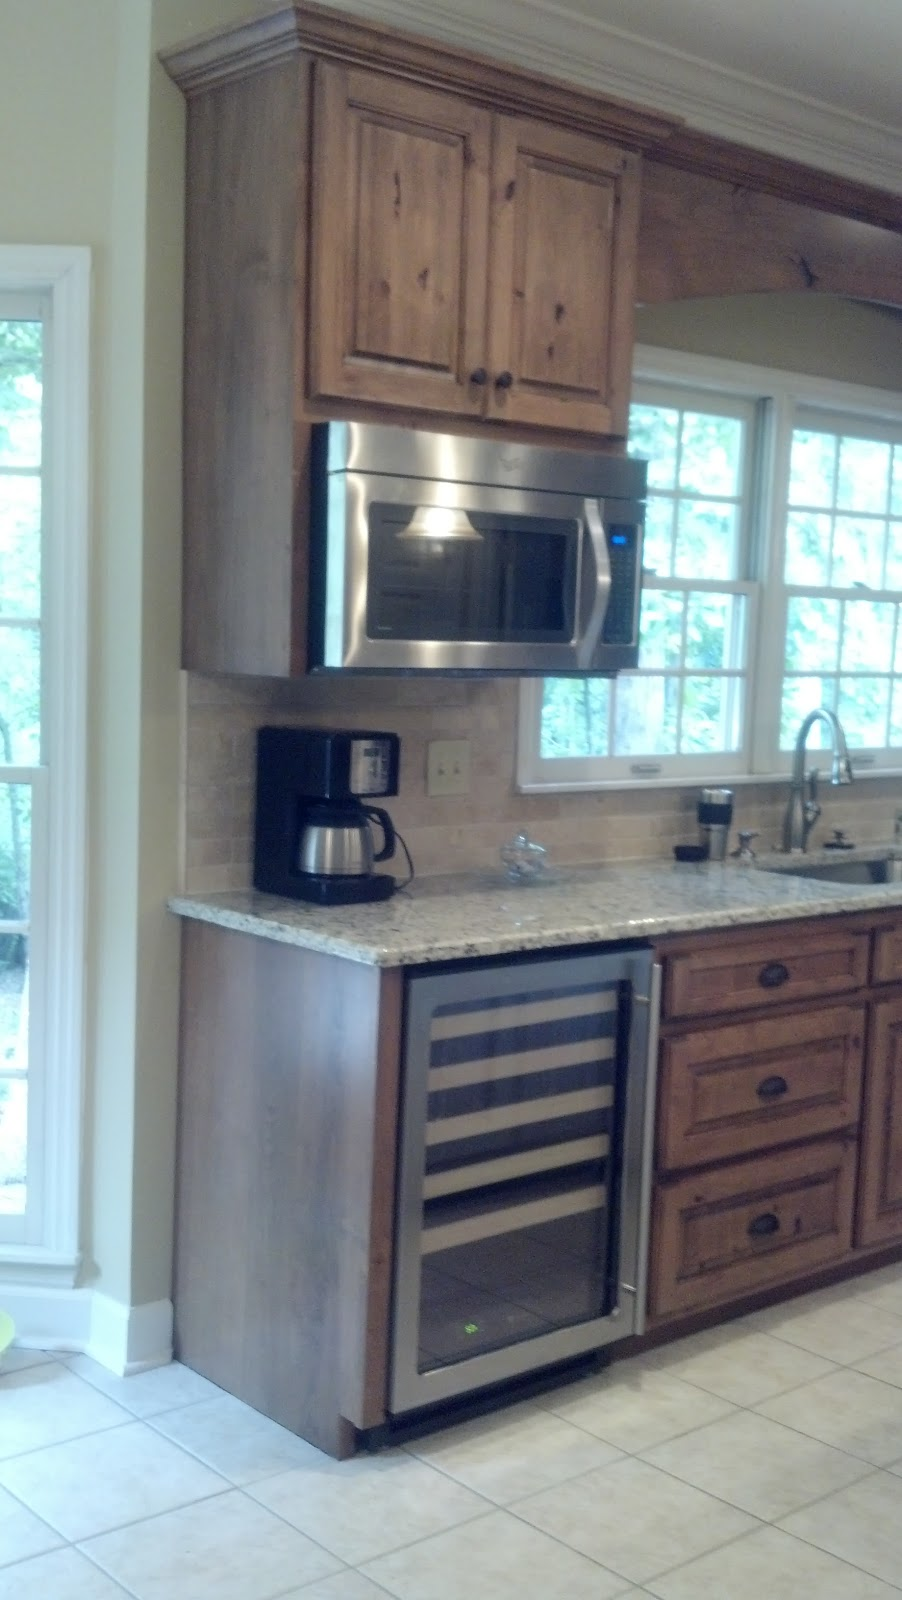 Adkisson's Cabinets: White Painted and Distressed Knotty ...